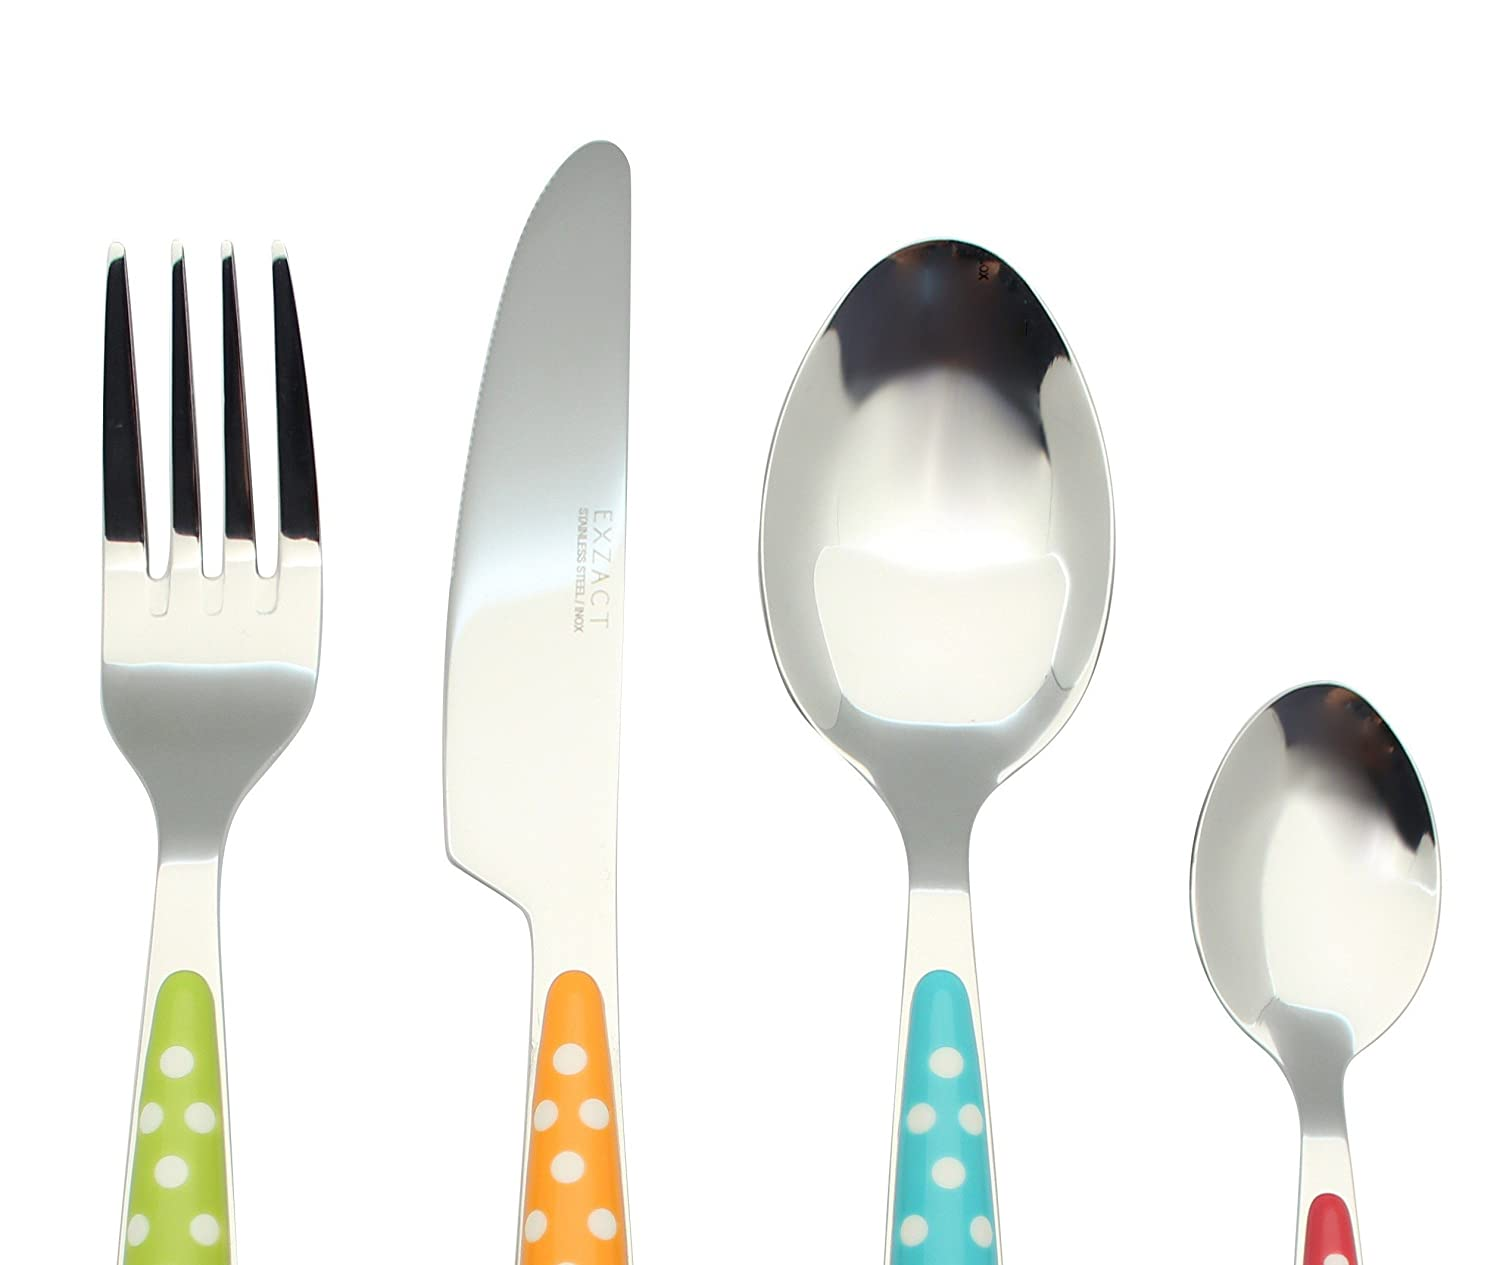 4 Dinner Spoons 4 Teaspoons 4 Dinner Knives Black x 16 EXZACT Cutlery Set of 16 stainless steel with color handles 4 Forks EX07